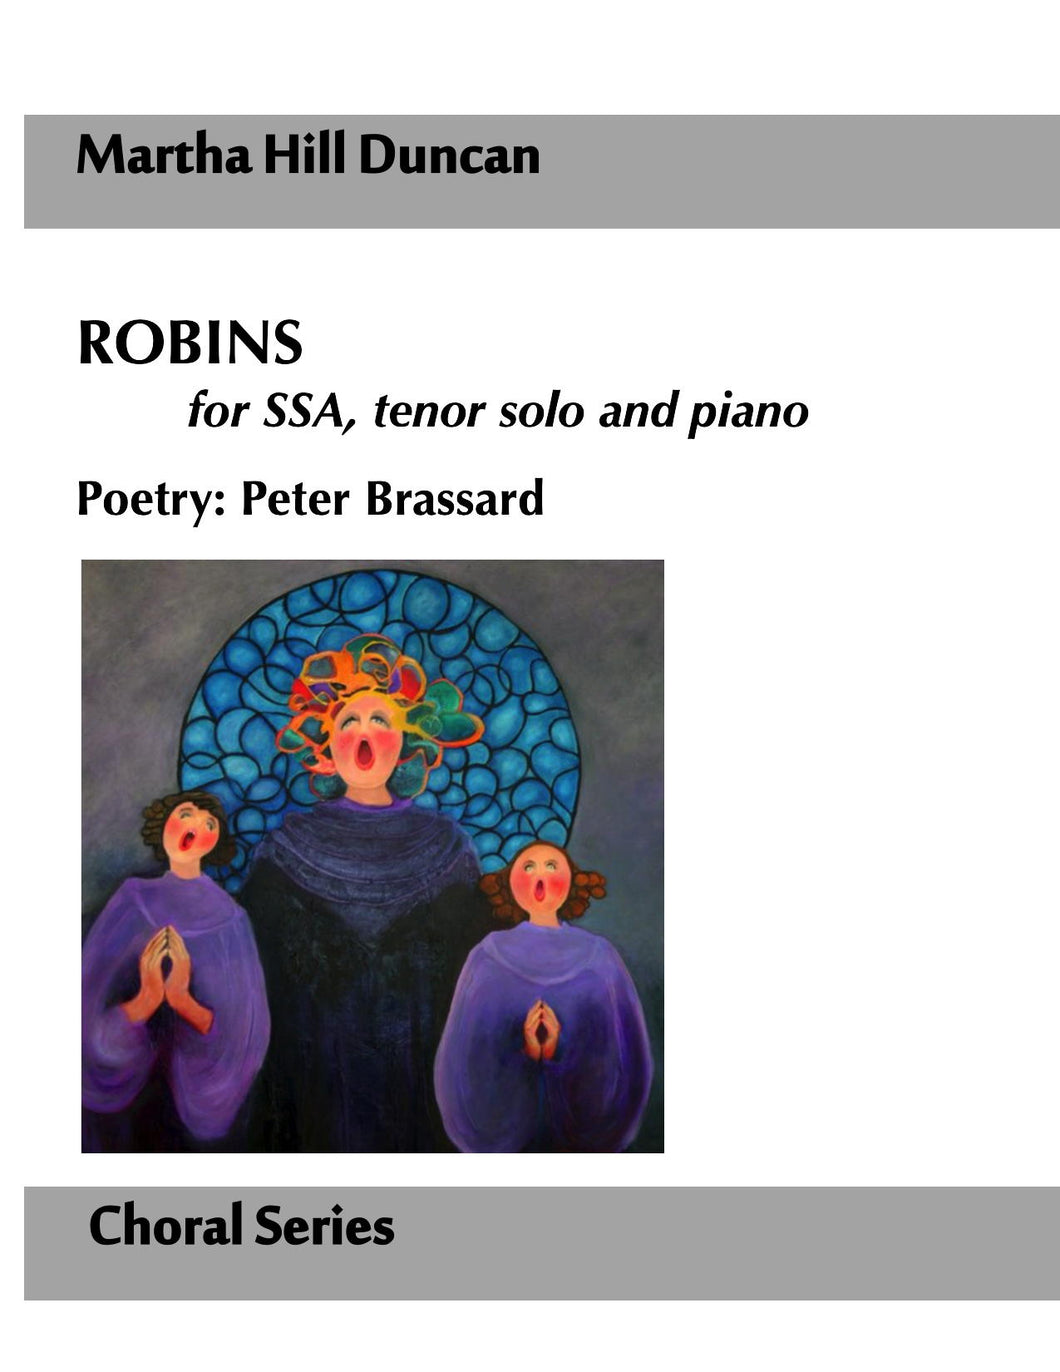 ROBINS FOR SSA, TENOR SOLOIST AND PIANO